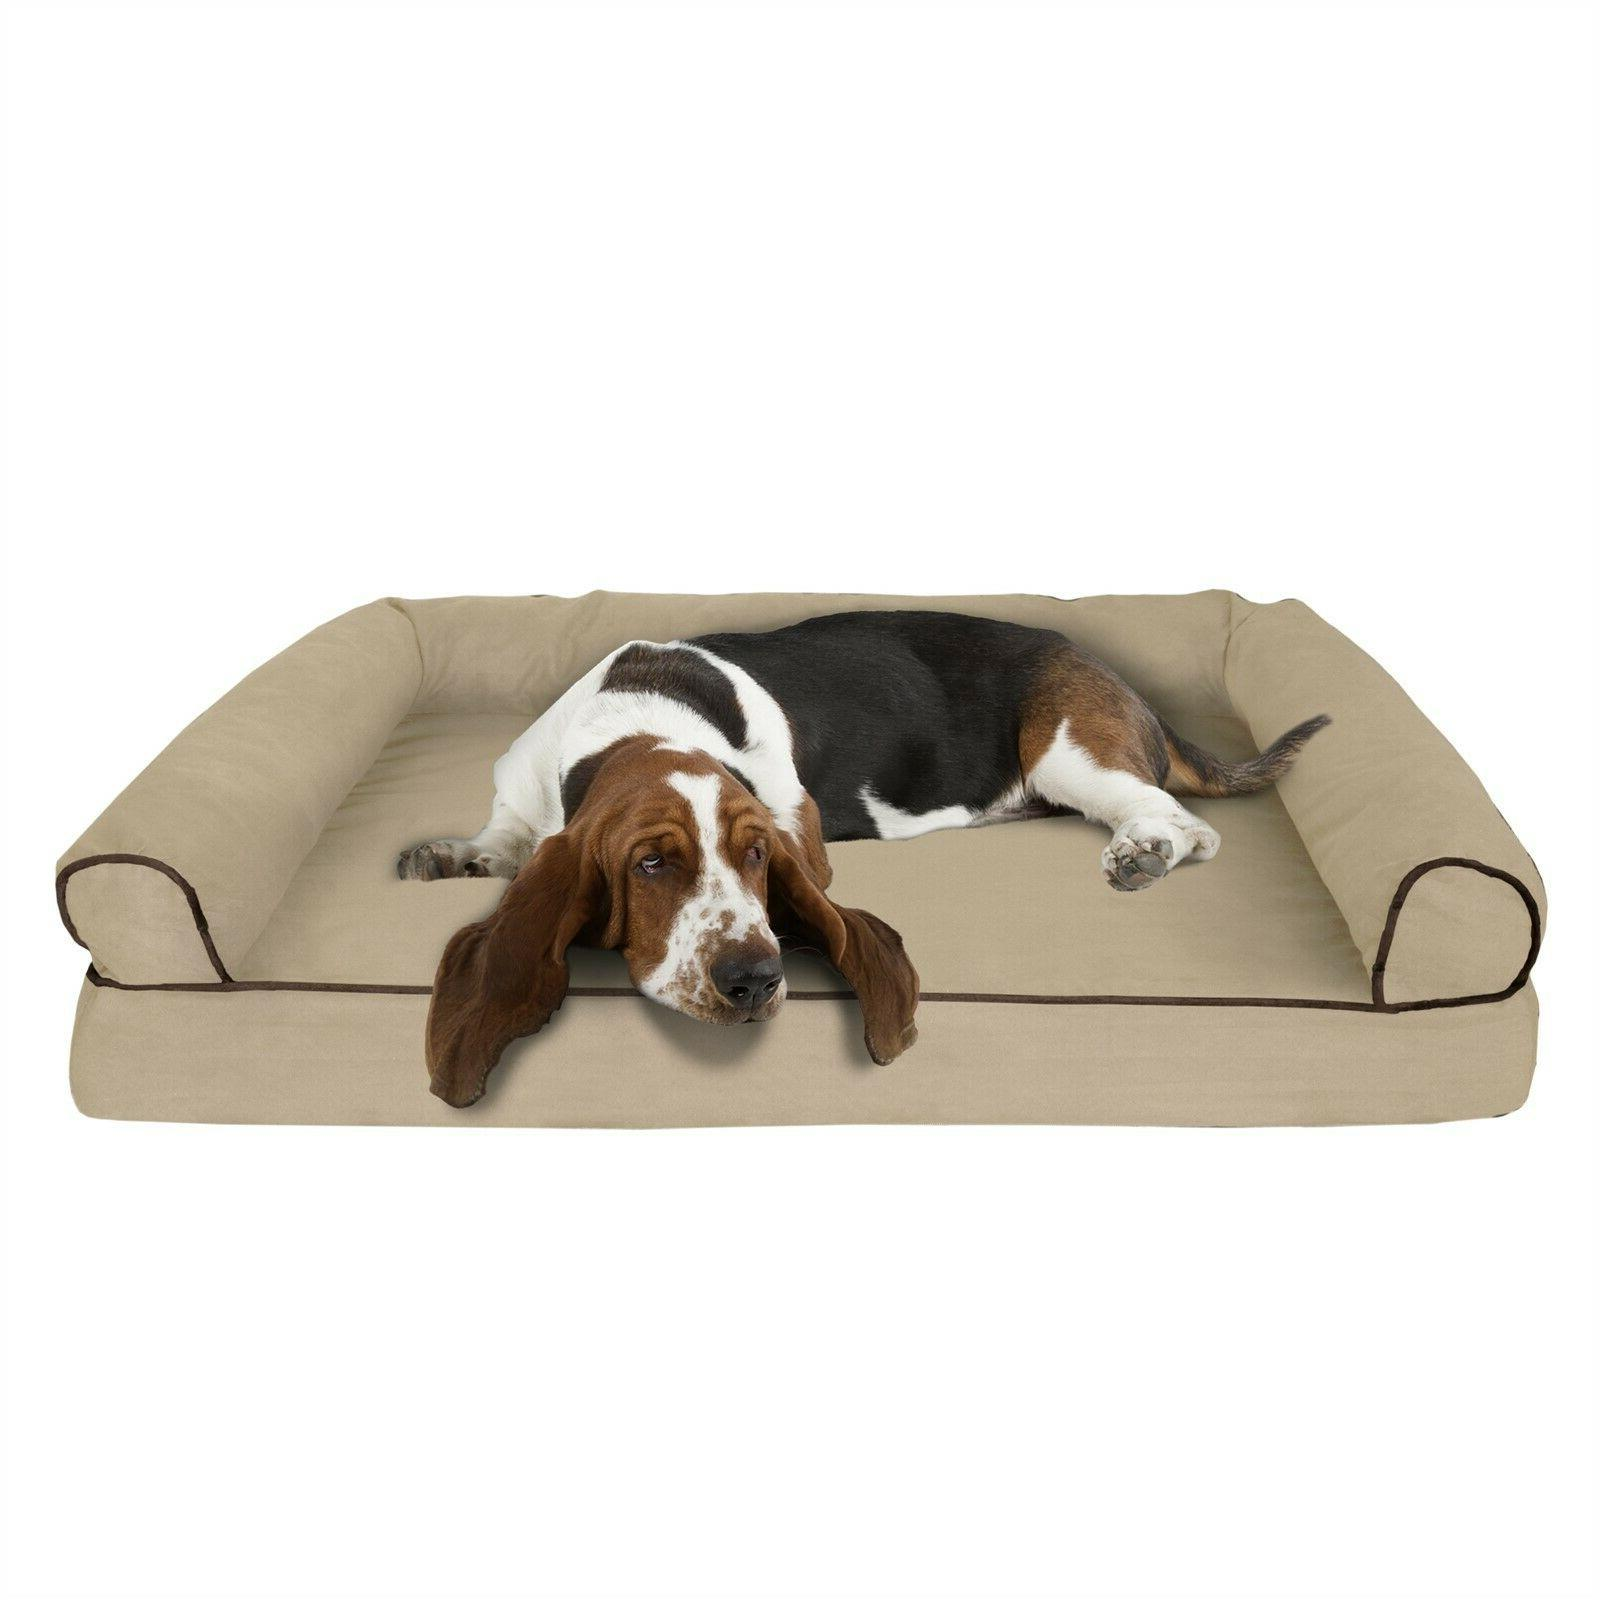 Orthopedic Dog Bed with Comfy Bolster Large XL Dogs Under 90